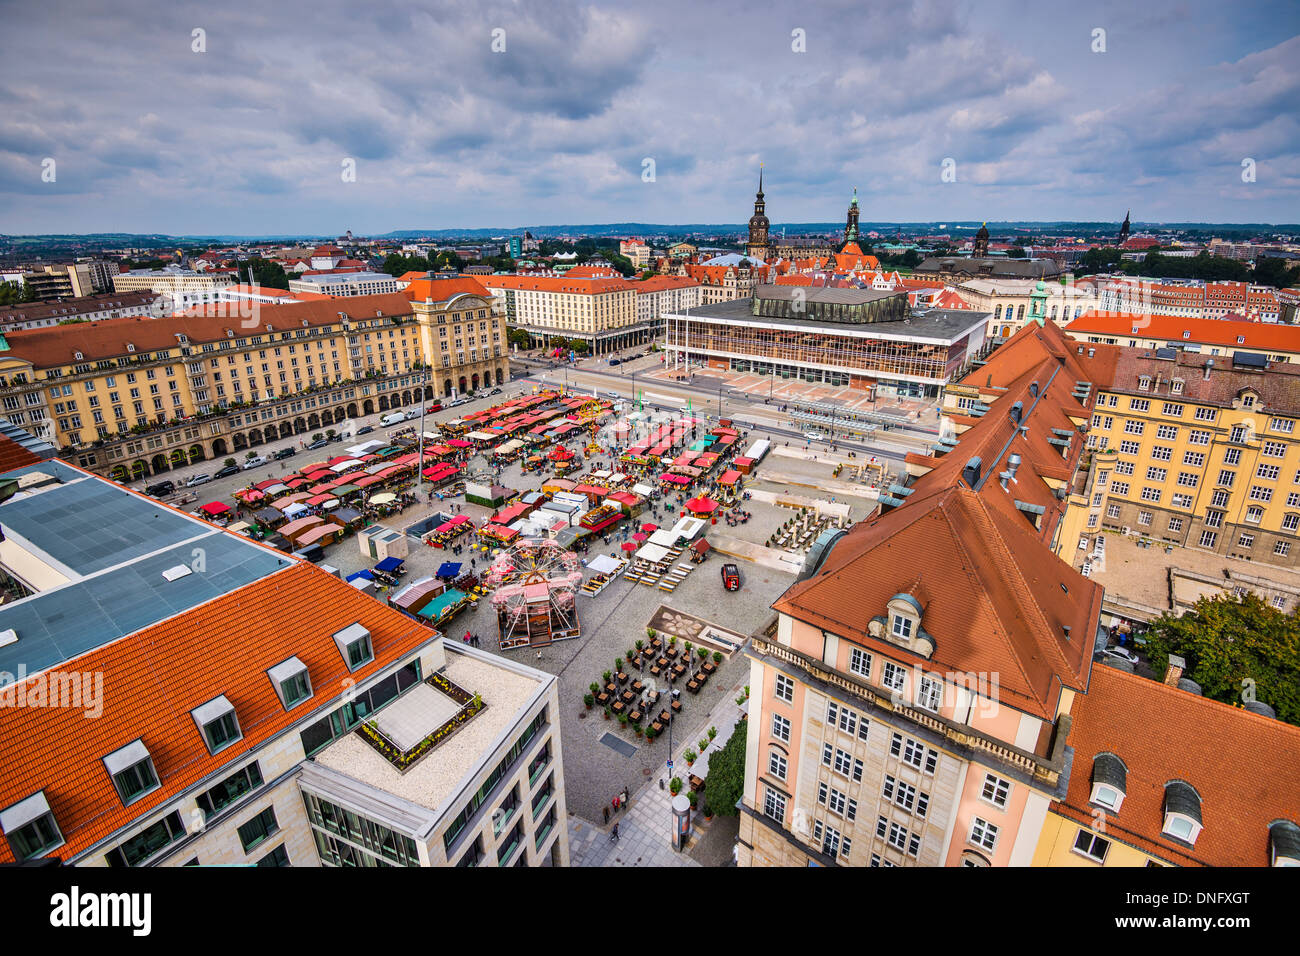 Dresden, Germany cityscape at Altmart Square. Stock Photo